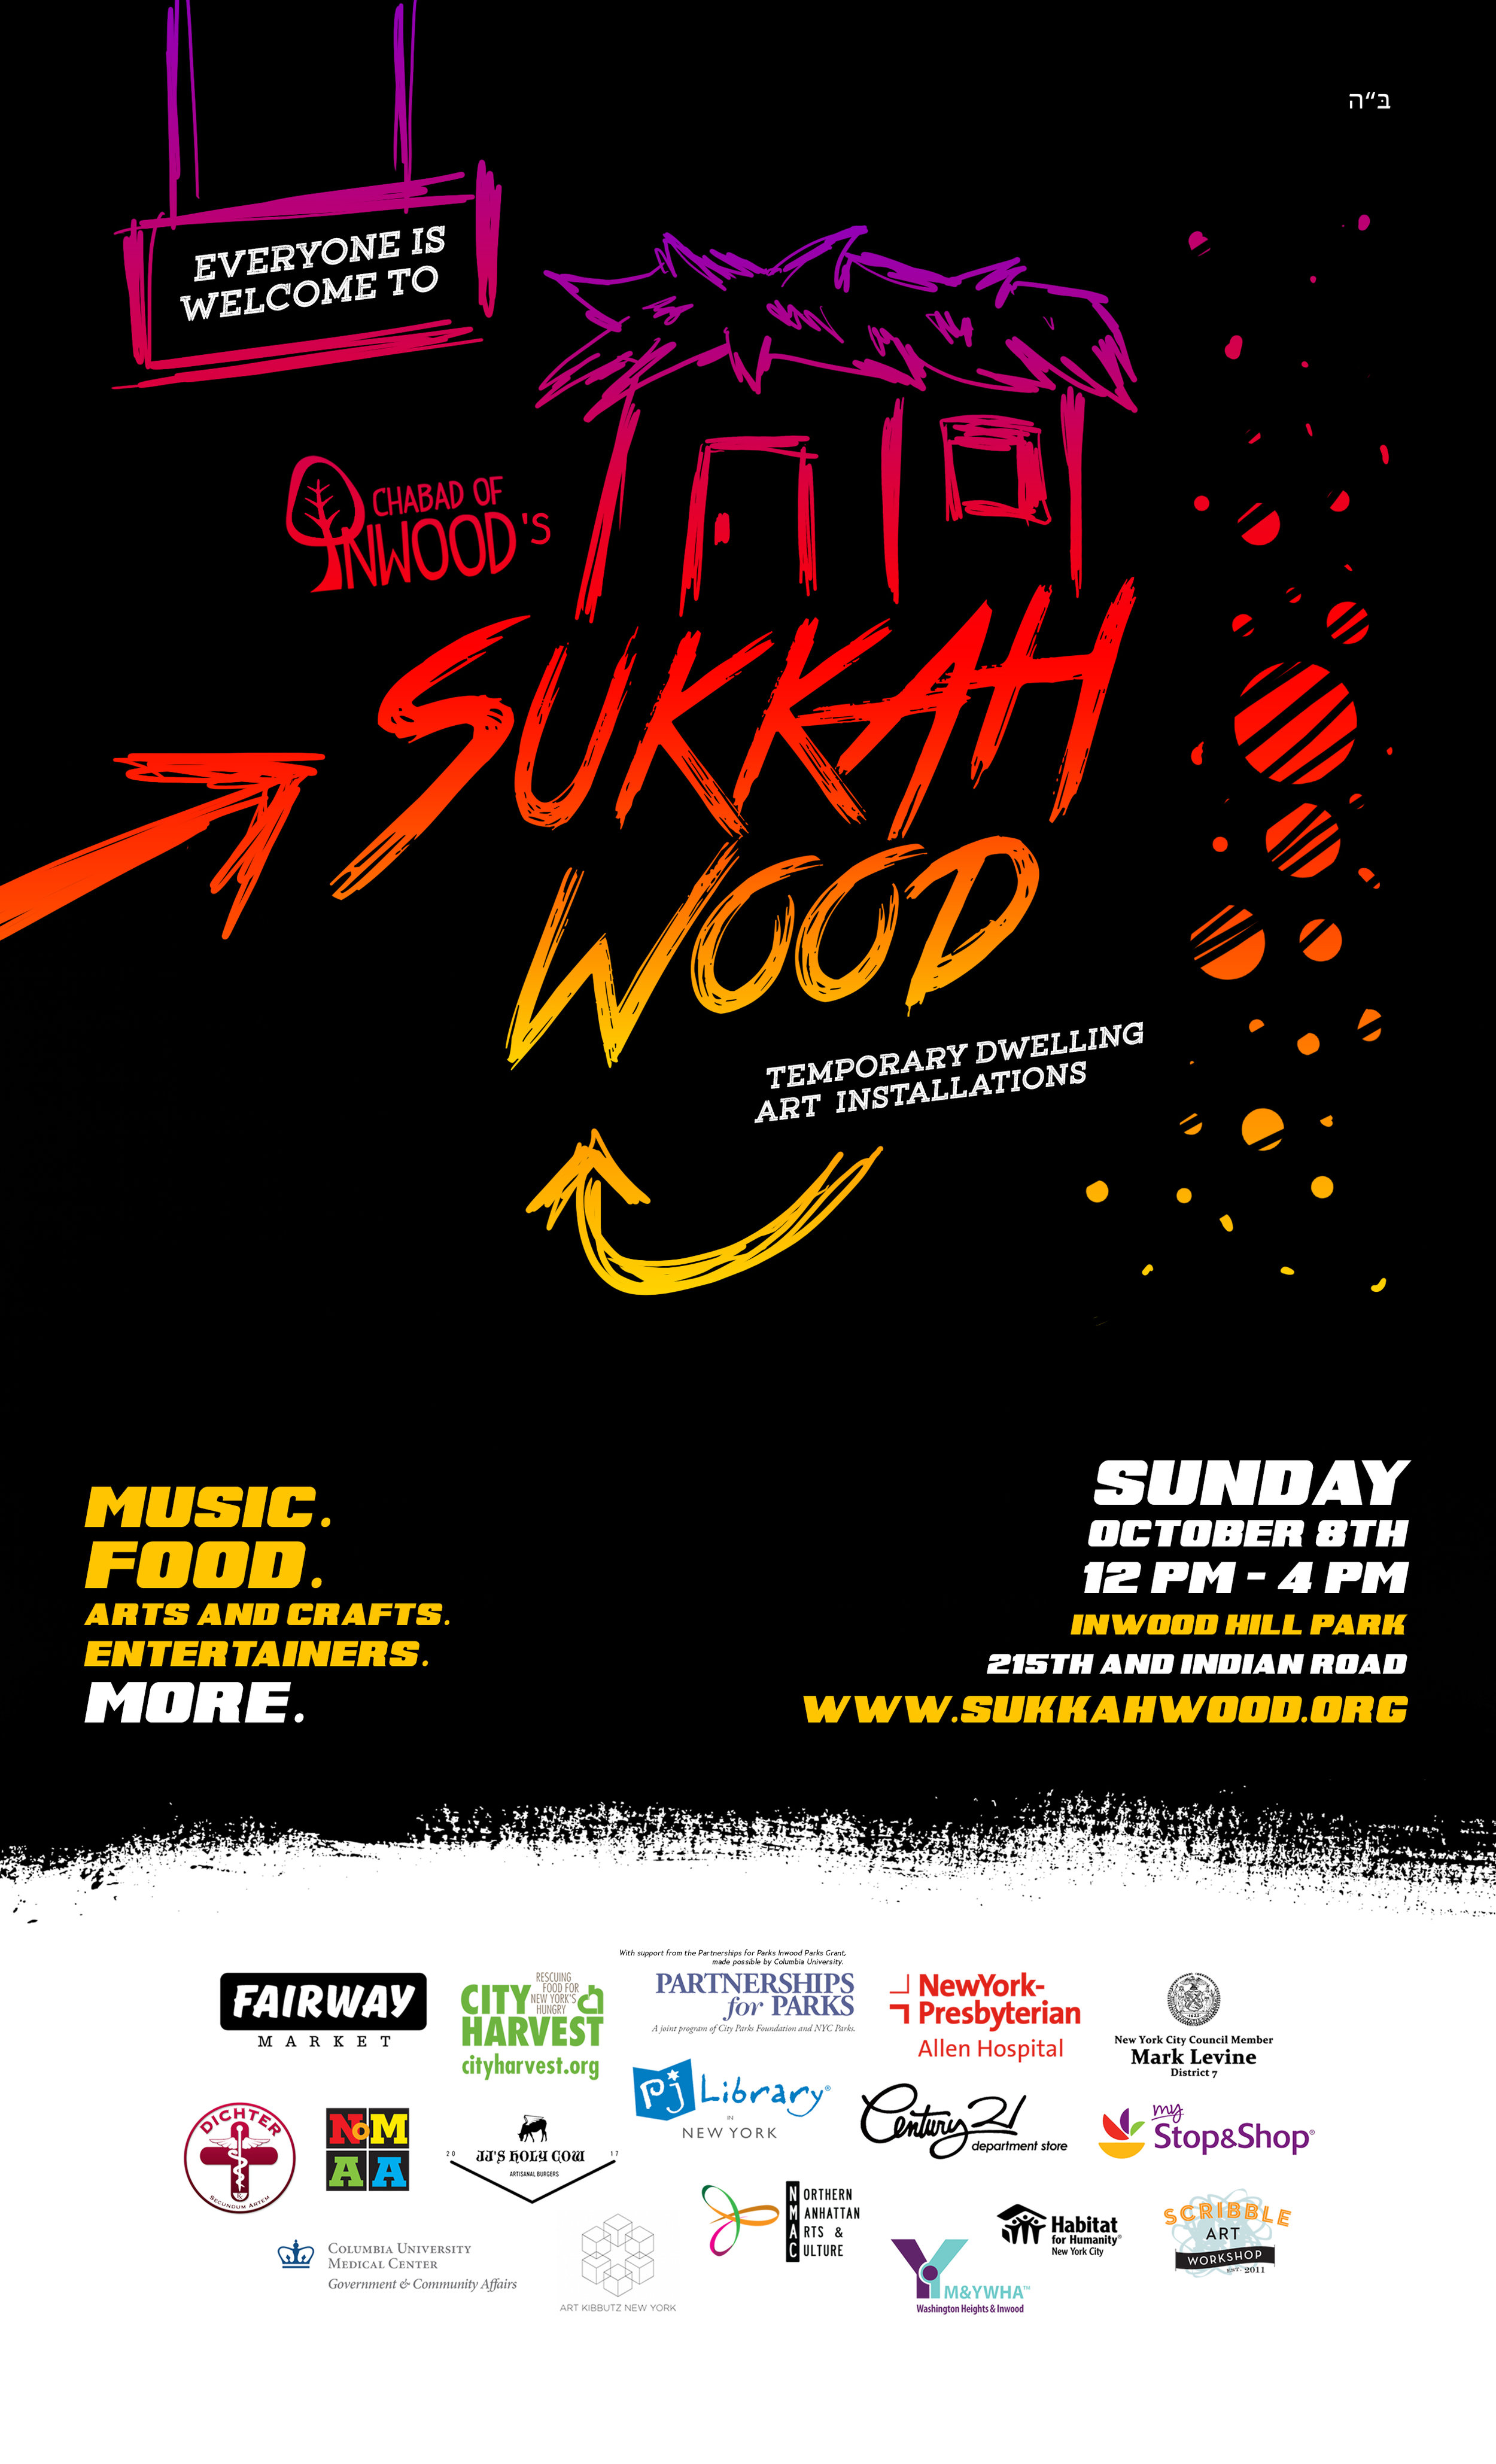 sukkah wood finished poster (3).jpg